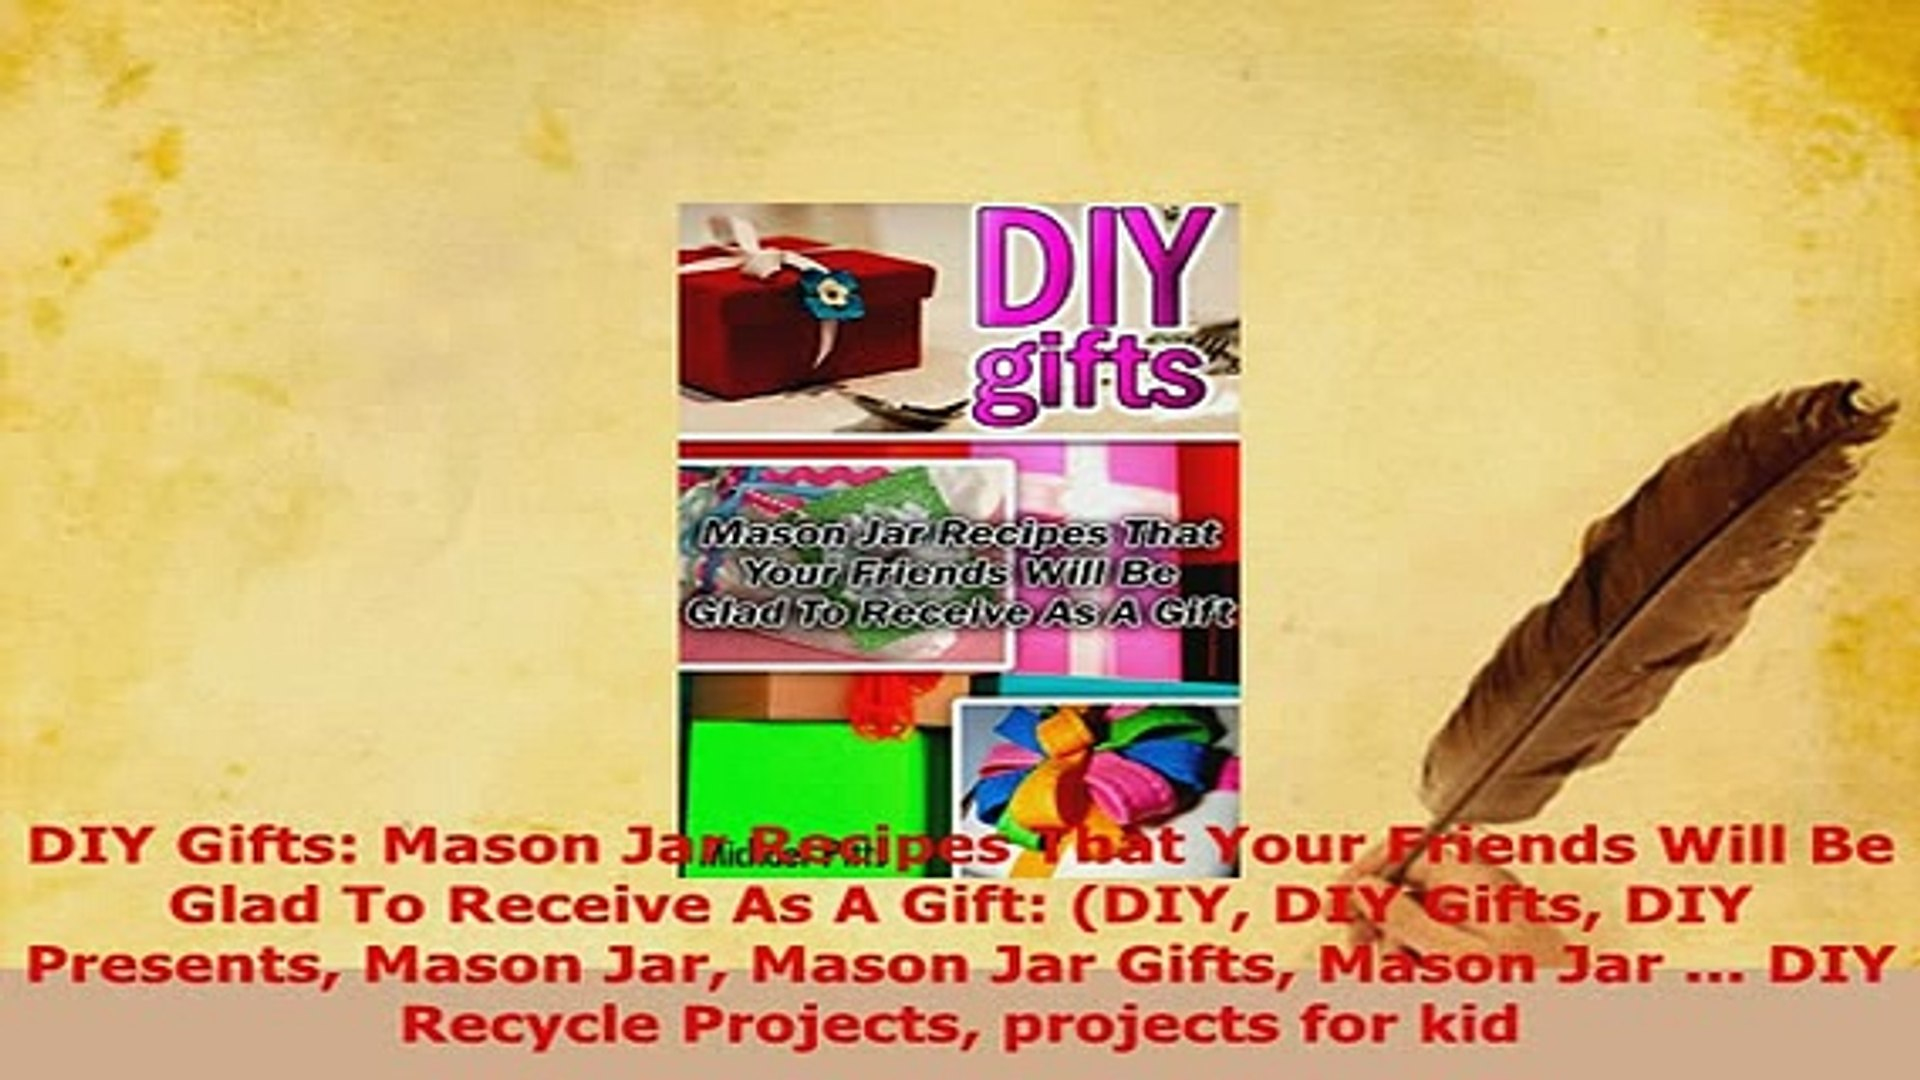 Download  DIY Gifts Mason Jar Recipes That Your Friends Will Be Glad To Receive As A Gift DIY DIY Re